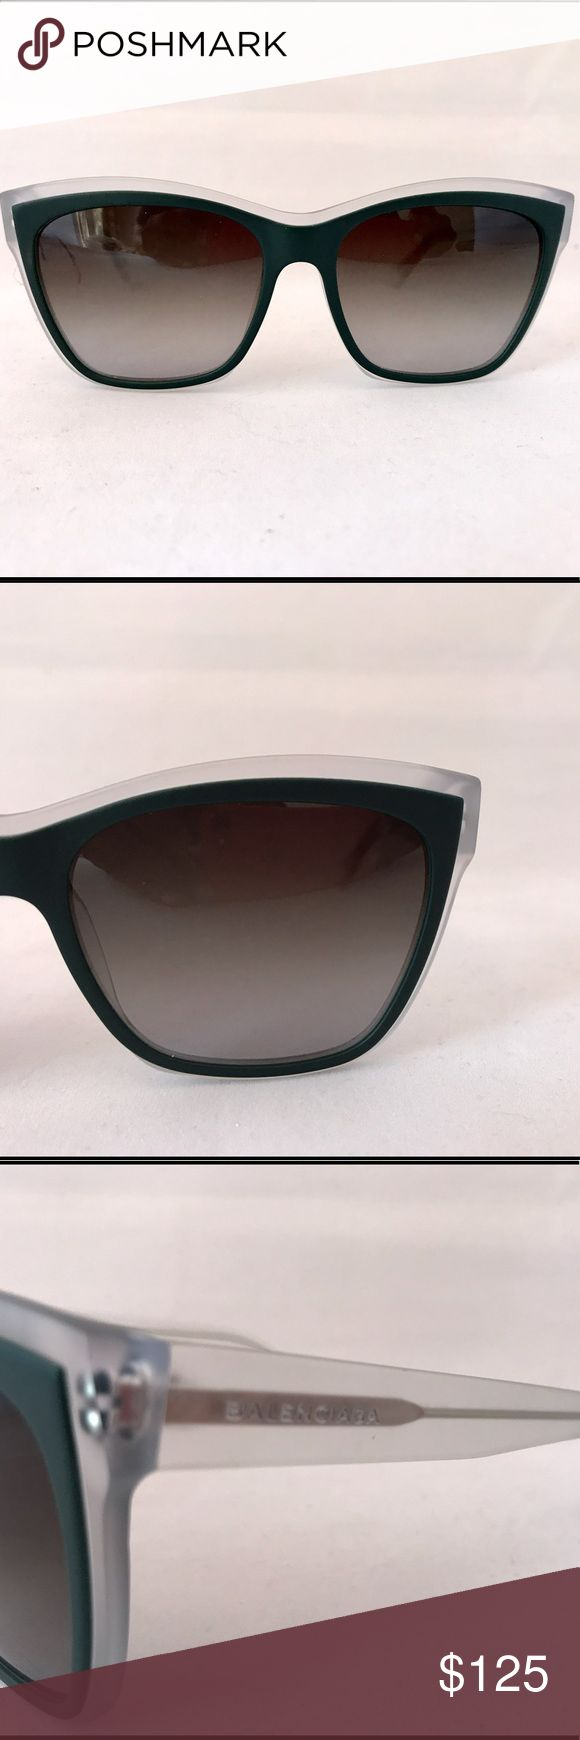 Balenciaga sunglasses Balenciaga sunglasses new but does not ship with original retail case no scratches no blemishes new model number is BA 6698 I ship fast Balenciaga Accessories Sunglasses